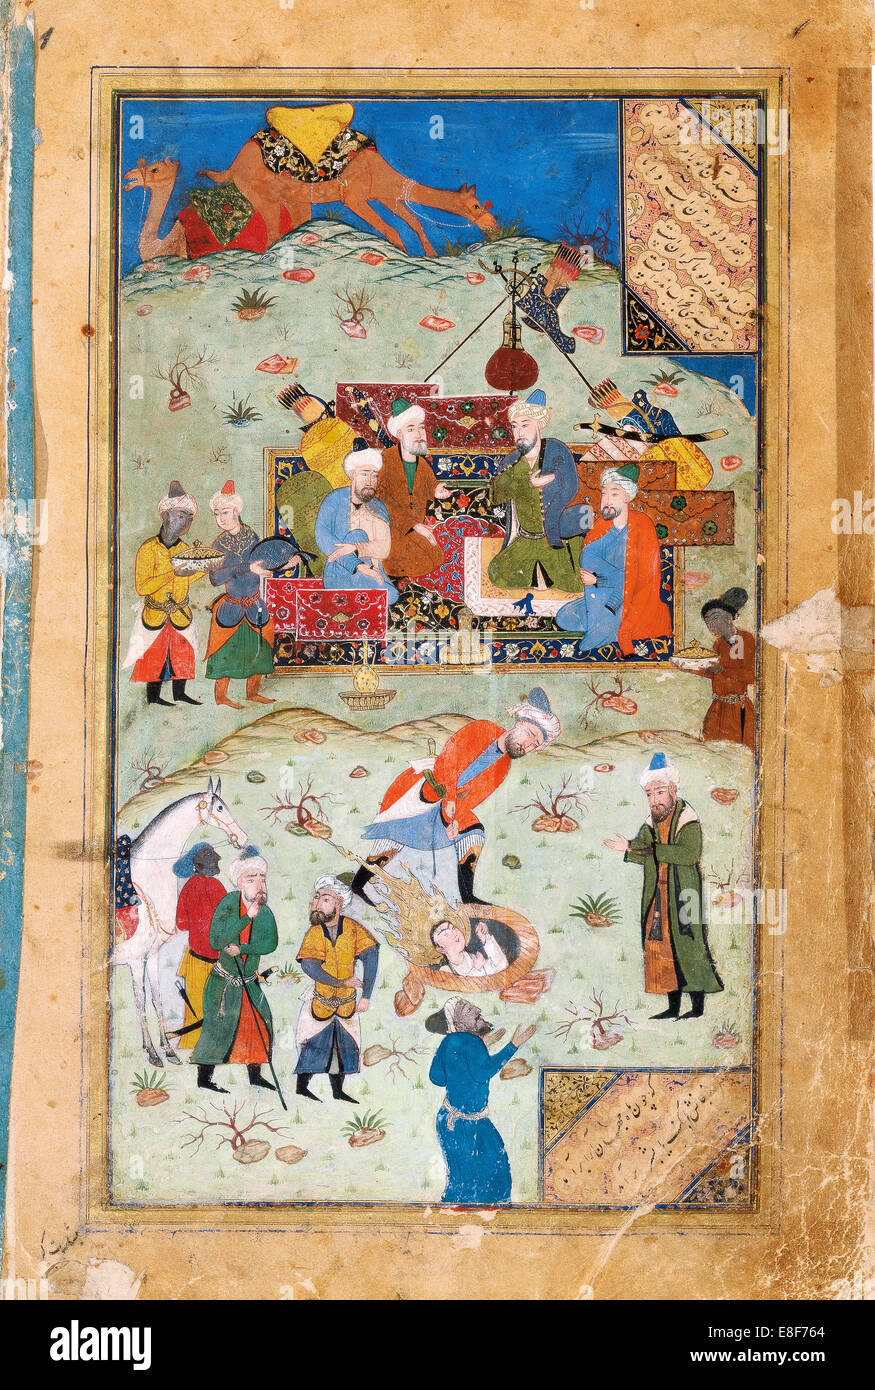 Miniature from Yusuf and Zalikha (Legend of Joseph and Potiphar's Wife) by Jami. Artist: Anonymous - Stock Image